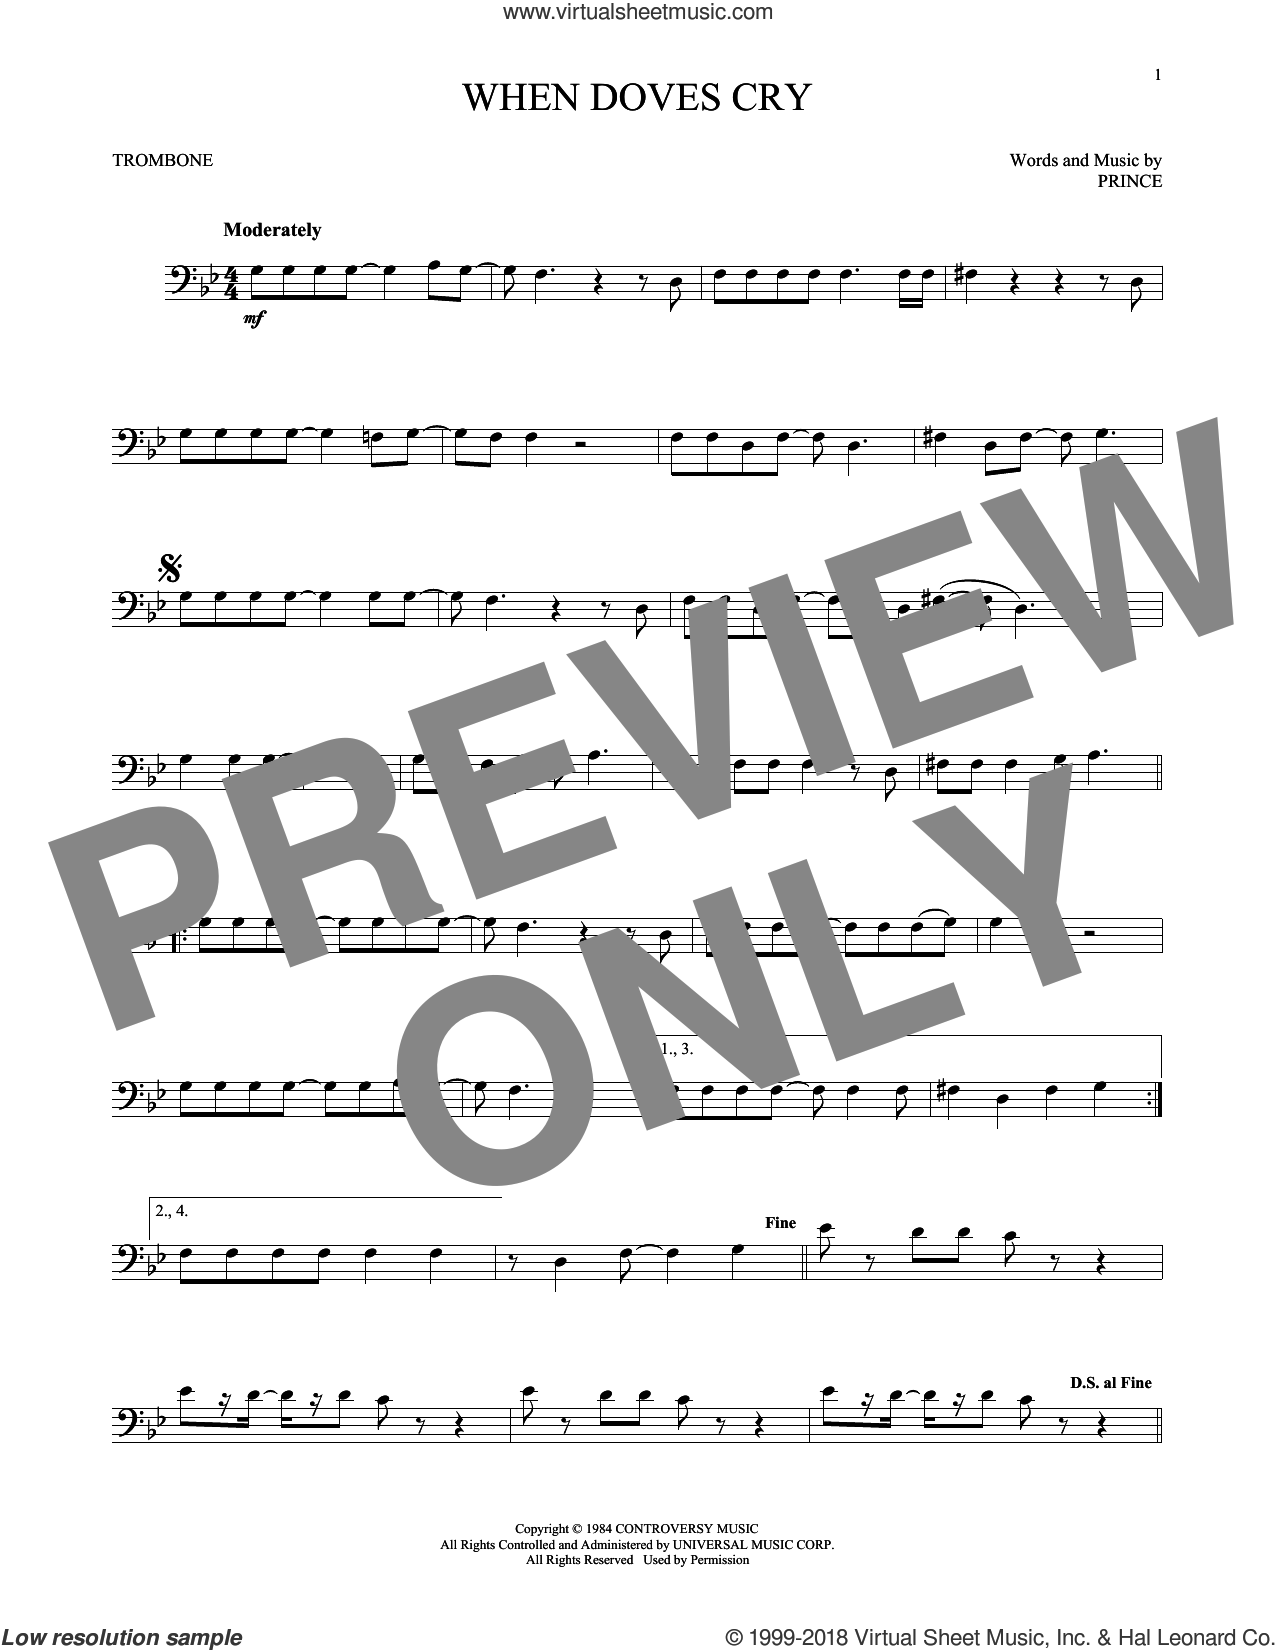 When Doves Cry sheet music for trombone solo by Prince, intermediate skill level